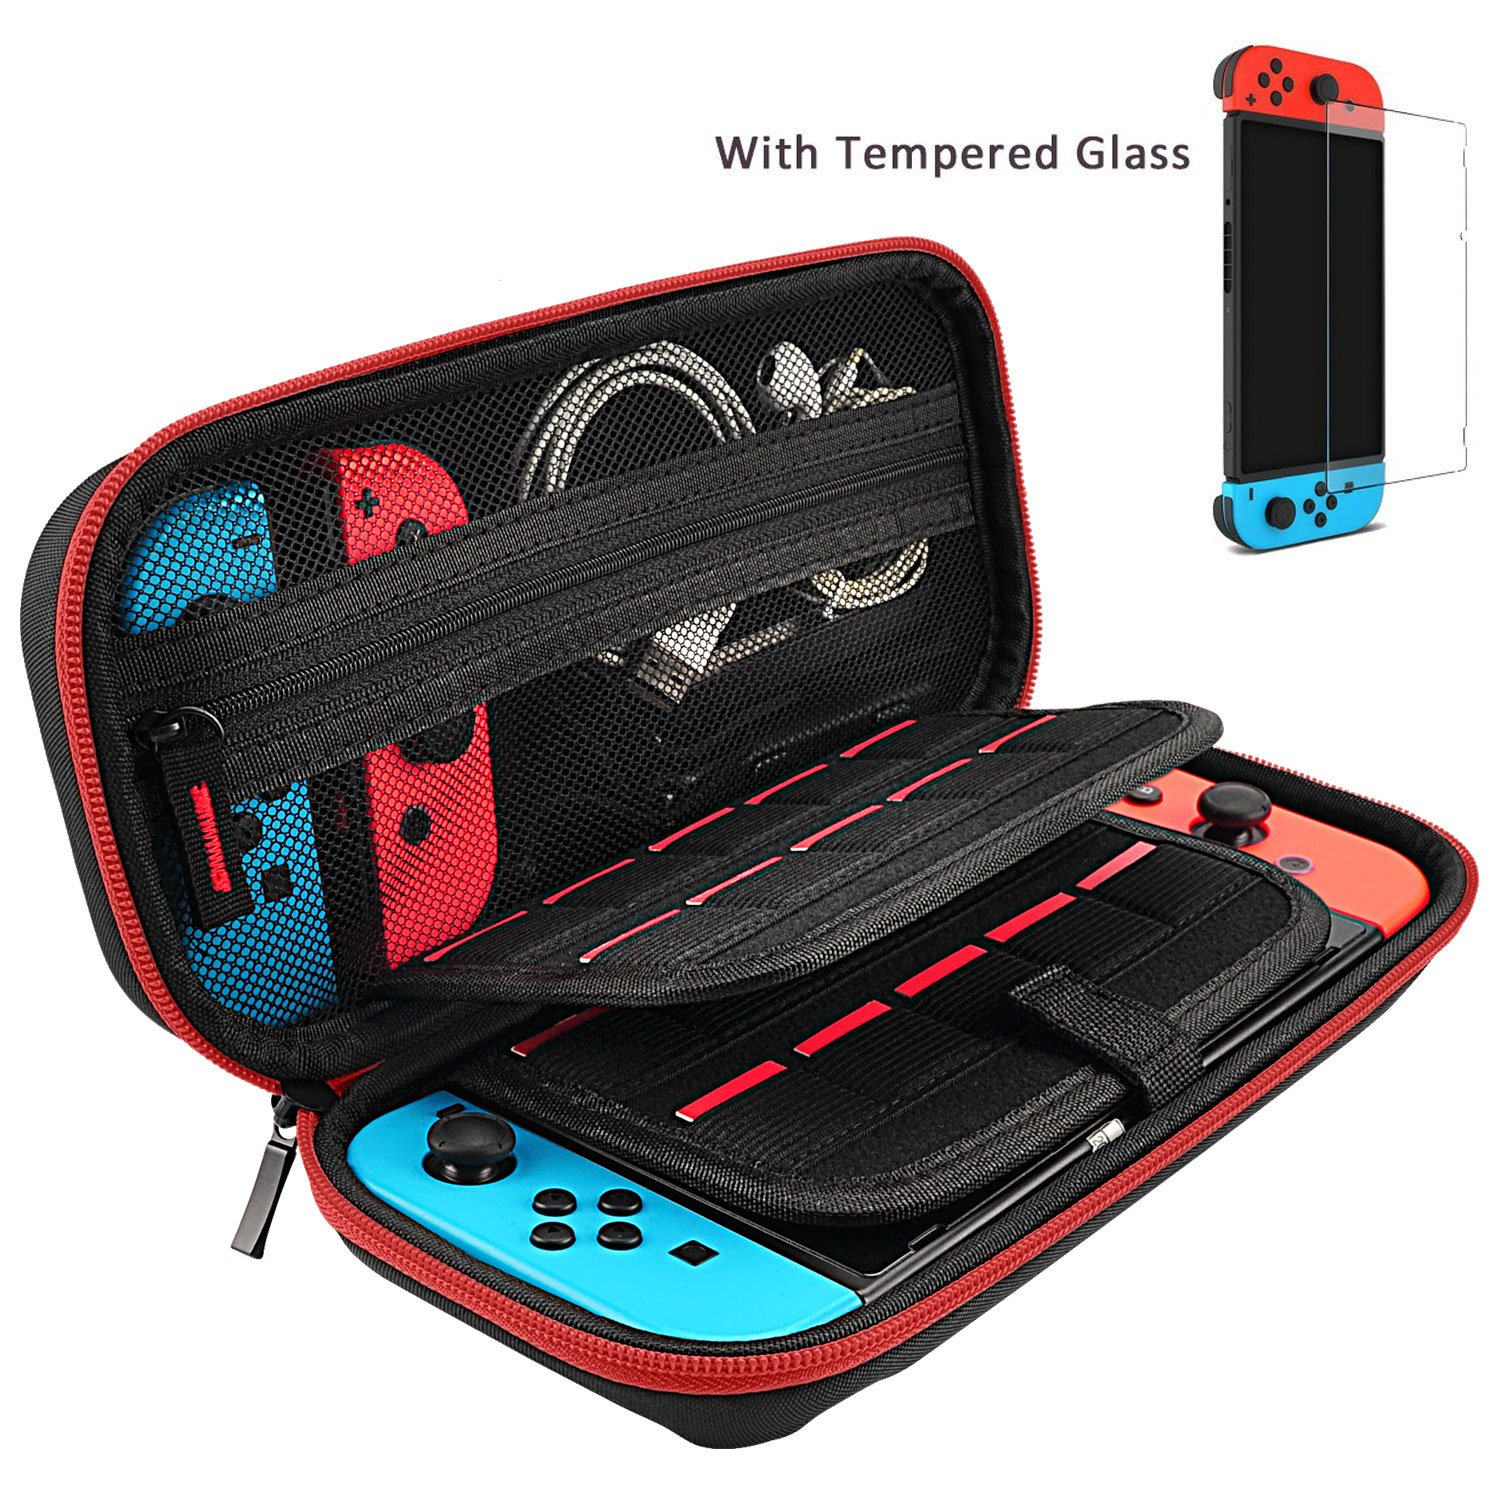 Hestia Goods Case and Tempered Glass Screen Protector for Nintendo Switch - Deluxe Hard Shell Travel Carrying Case, Hard Pouch Case for Nintendo Switch Console & Accessories, Streak Red